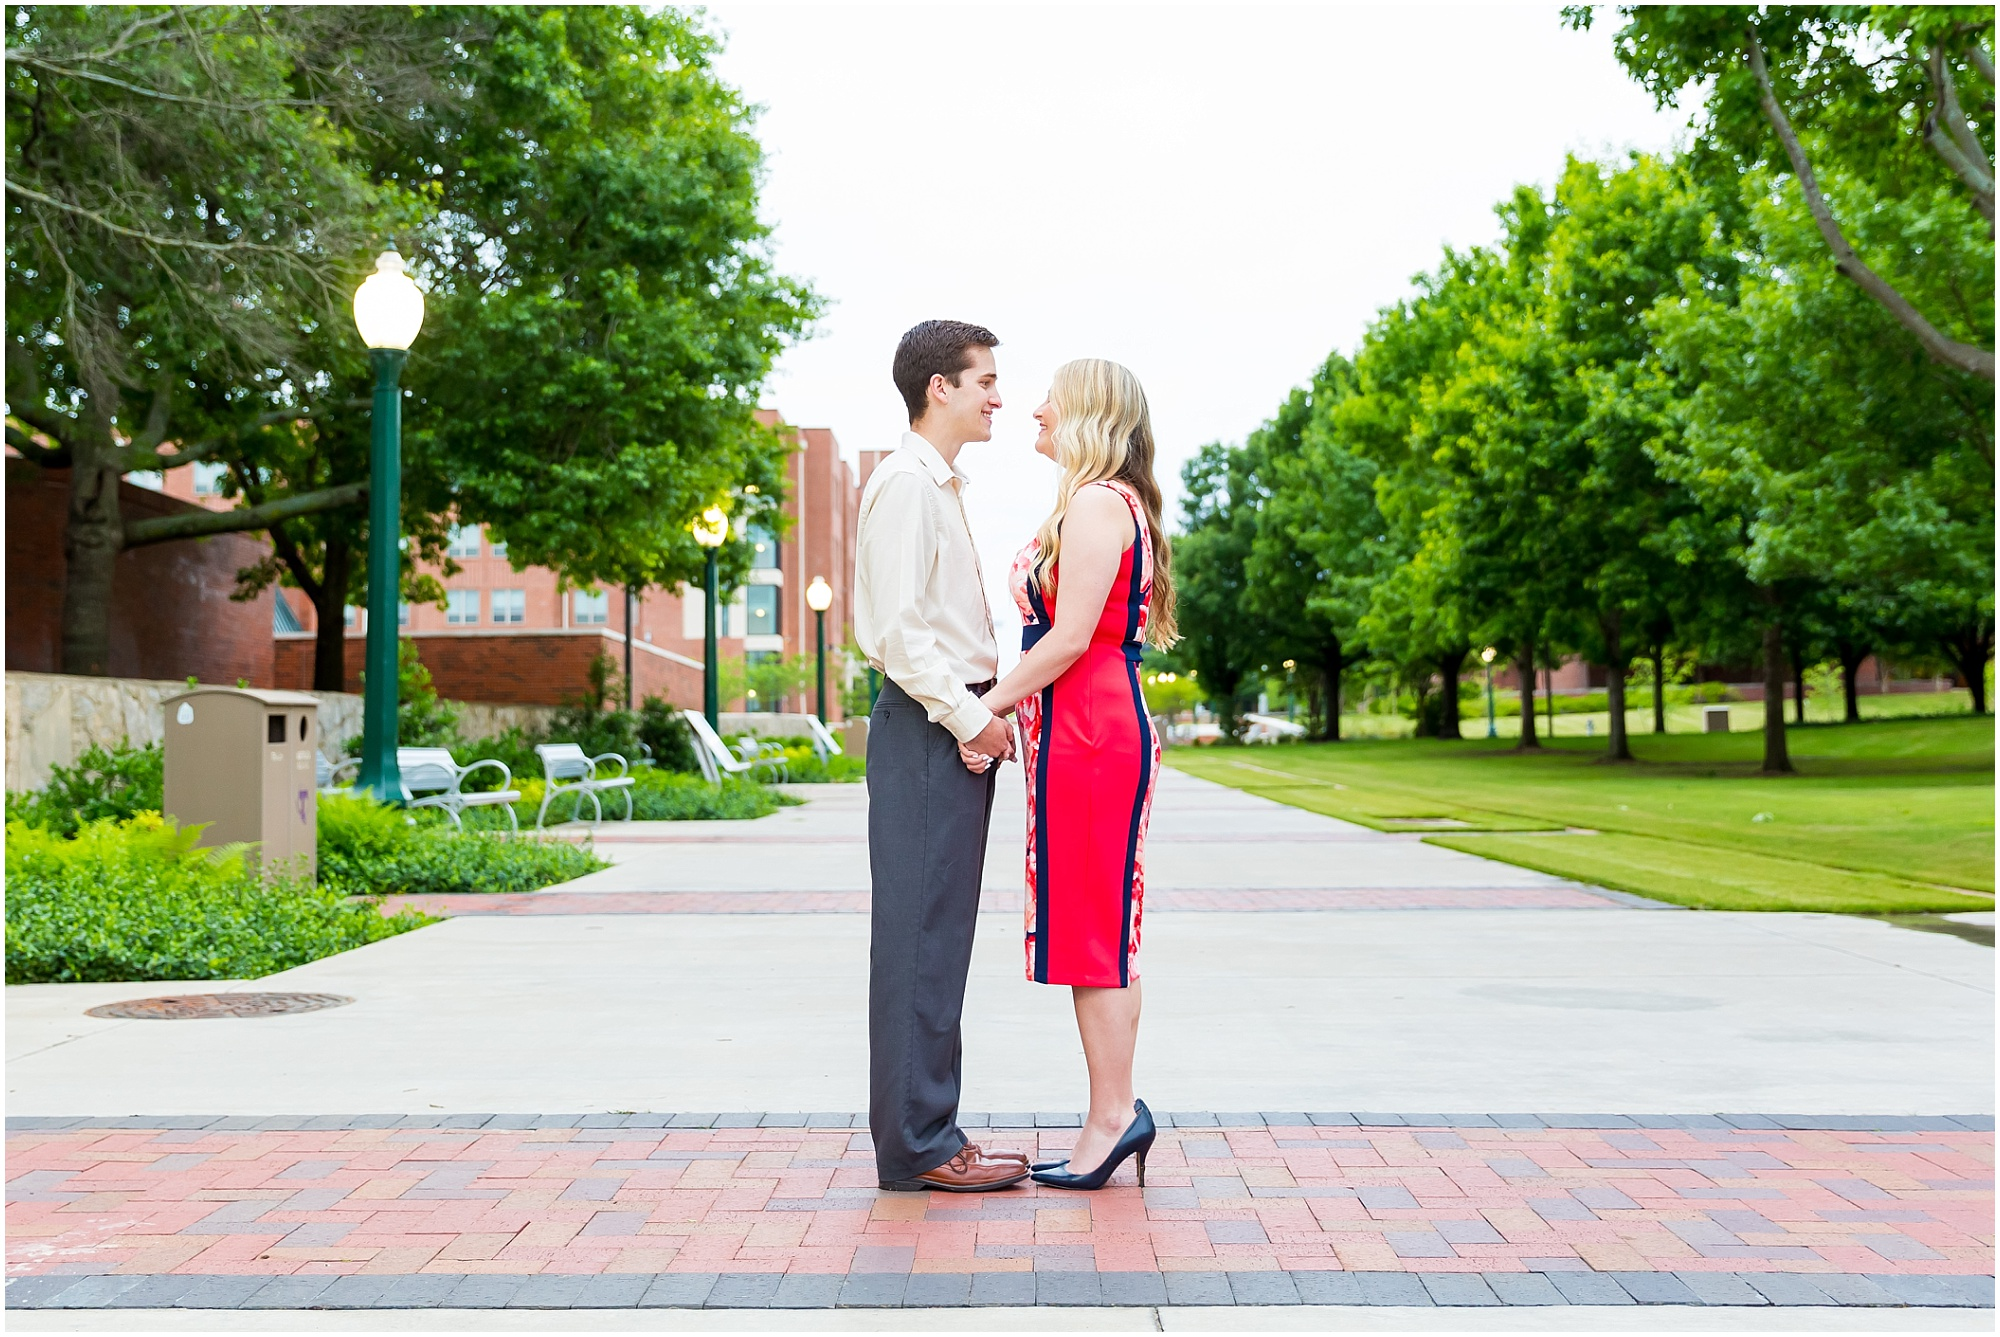 A couple stands in the center of a sidewalk lined with trees and buildings on the Tarleton State University campus in Stephenville, Texas - Jason & Melaina Photography - www.jasonandmelaina.com